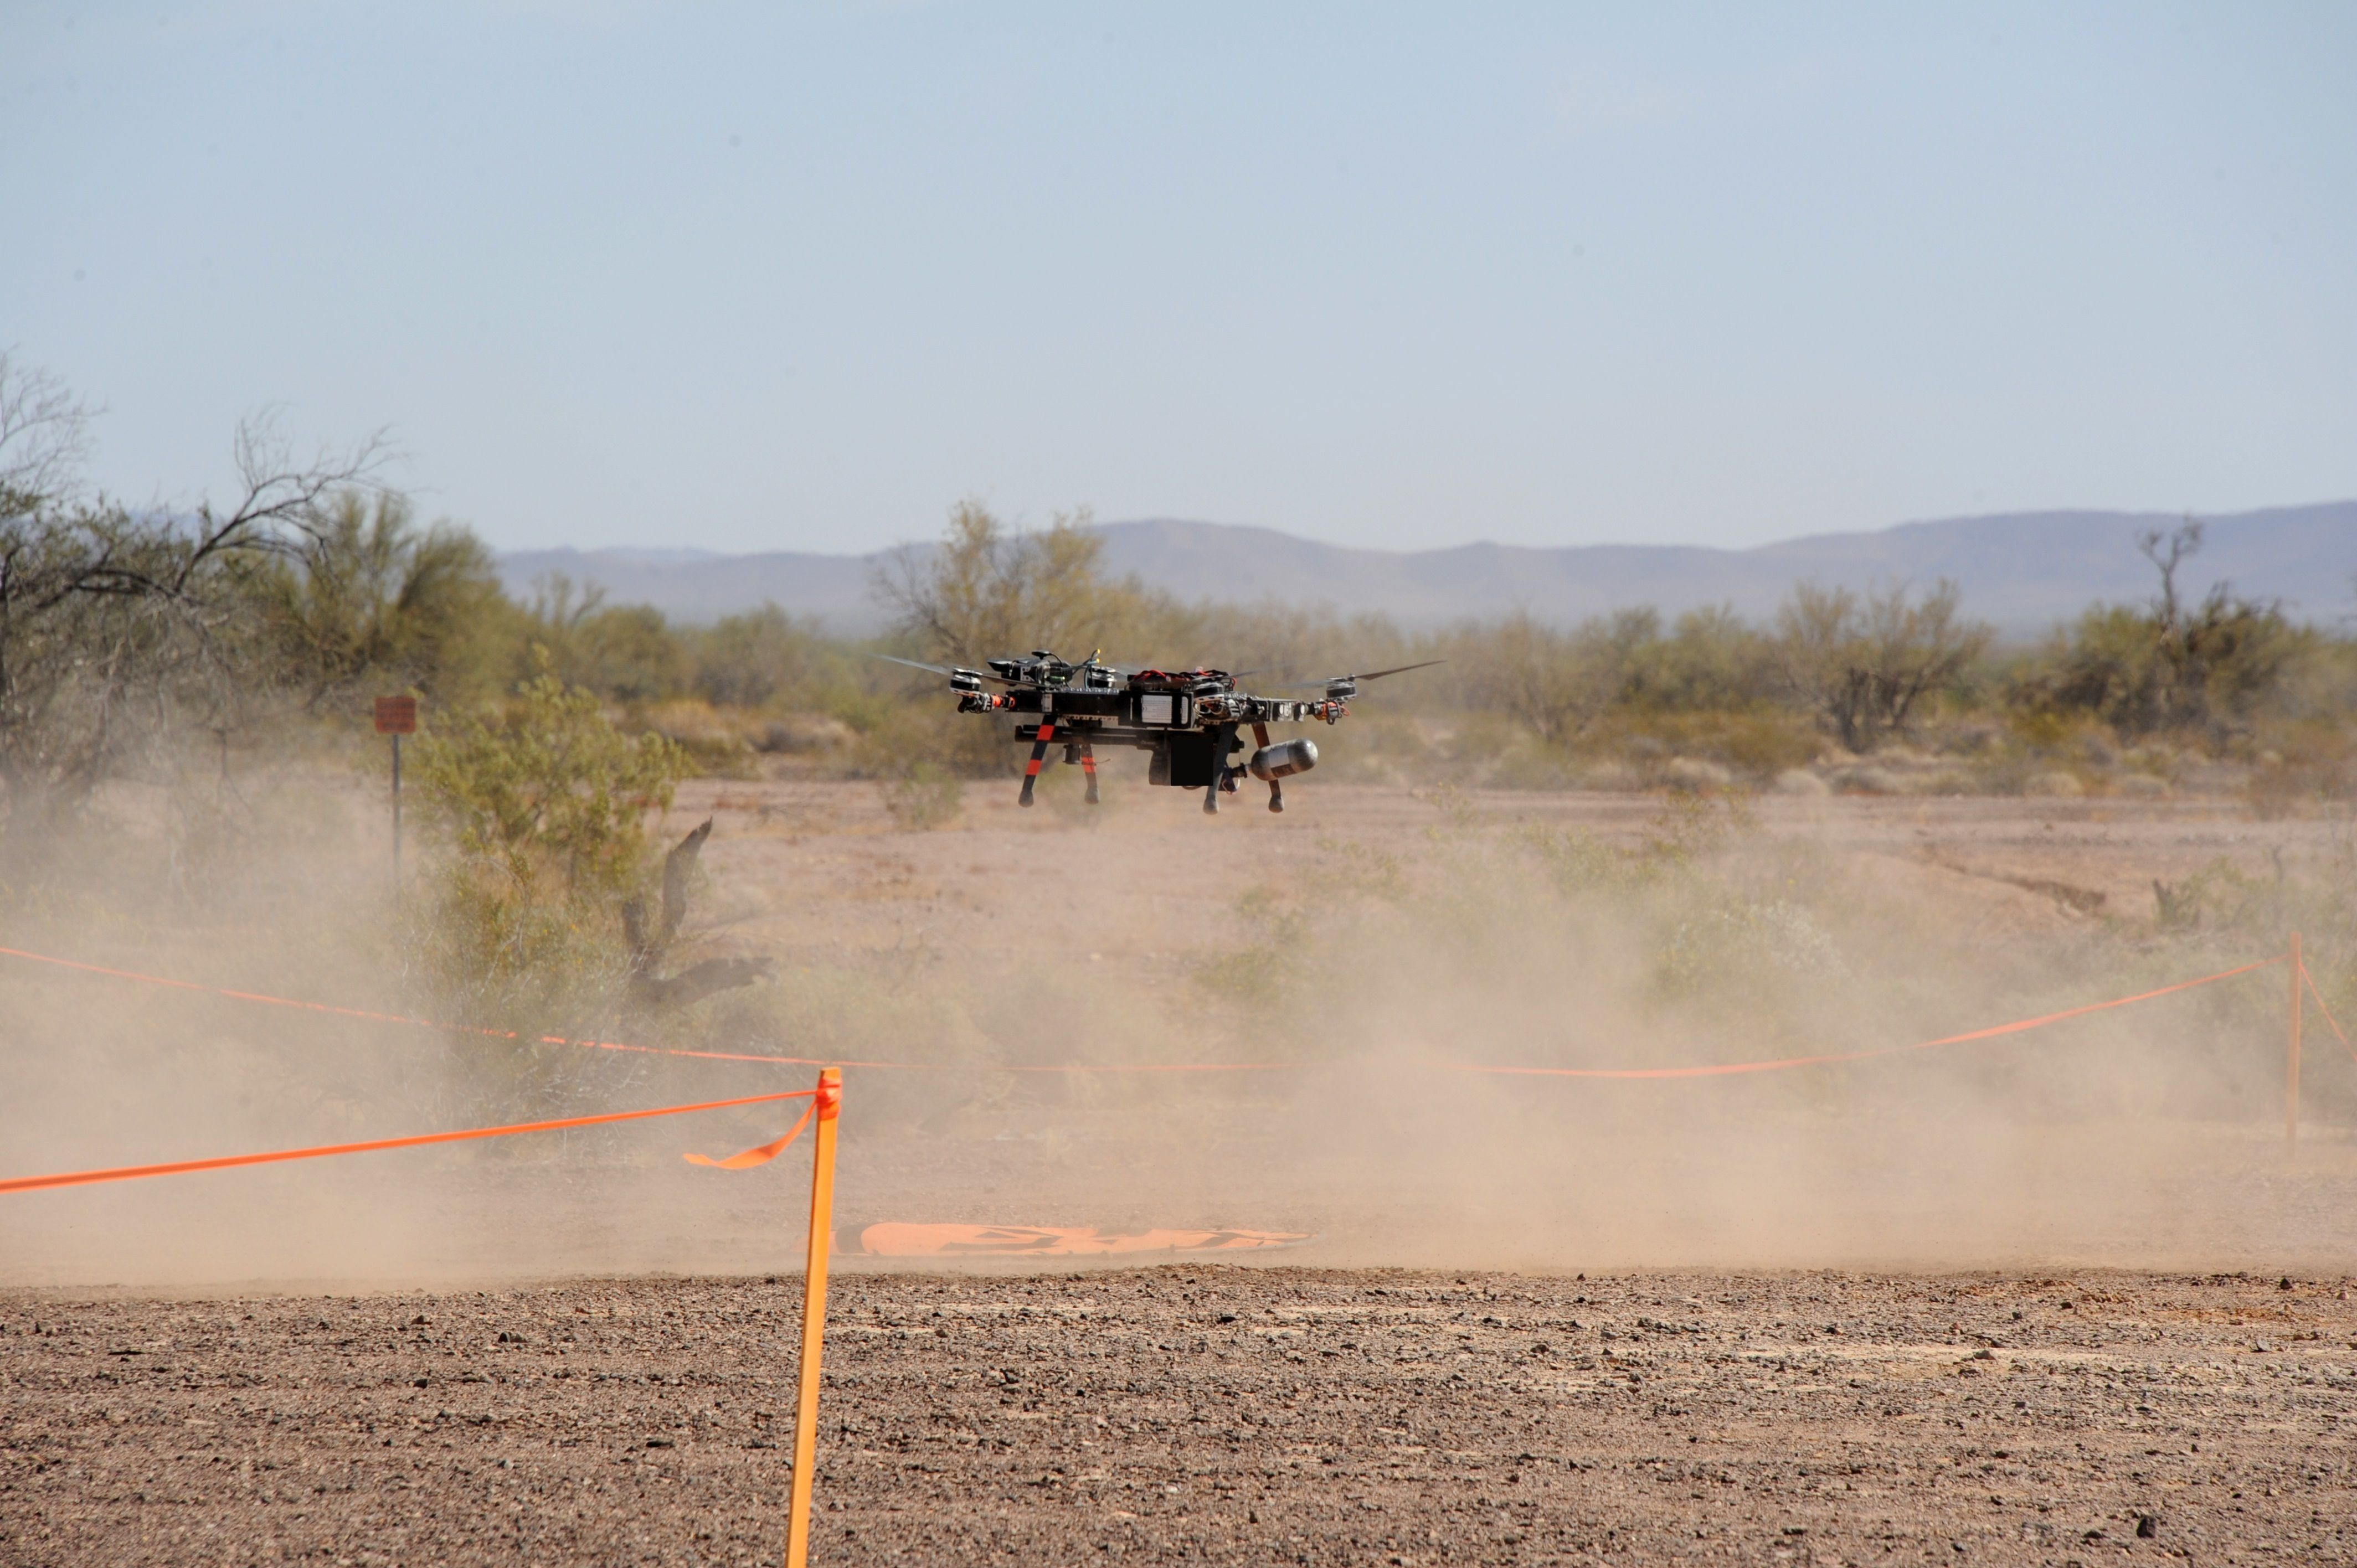 Three industry teams demonstrate capability to destroy small drones at Yuma